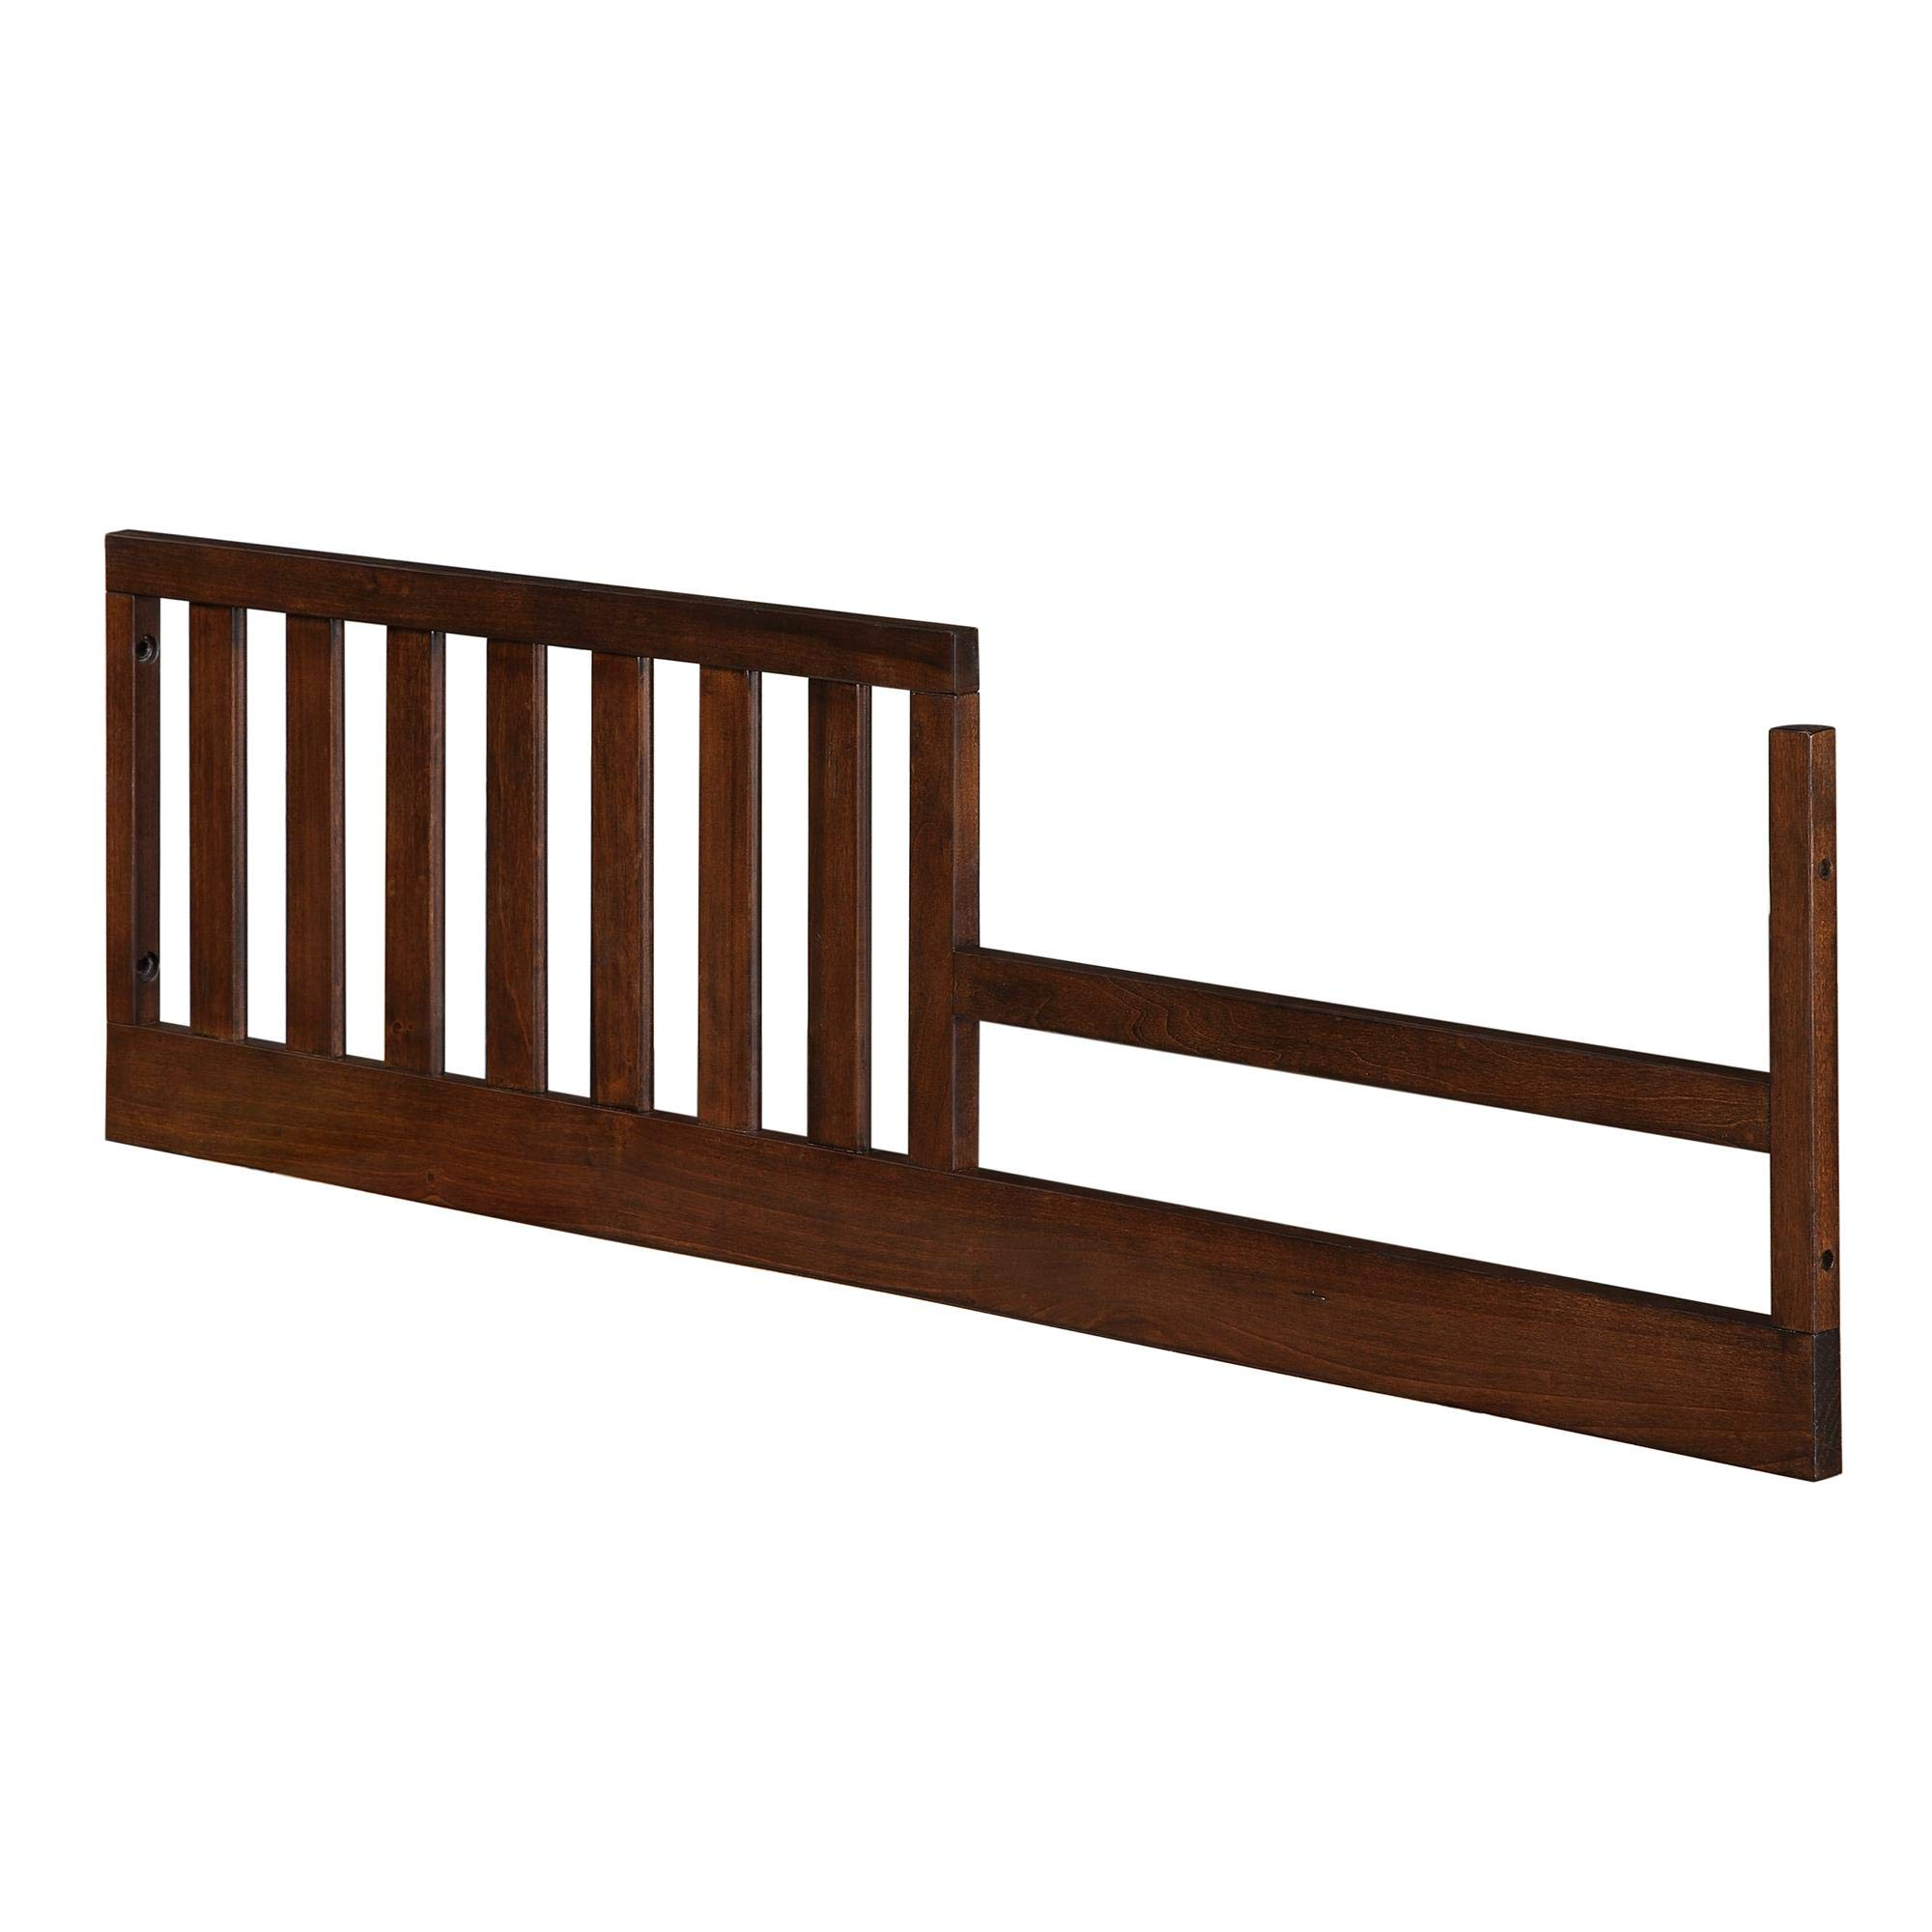 5 Cool Cribs That Convert To Full Beds: Amazon.com : Full Size Conversion Kit Bed Rails For